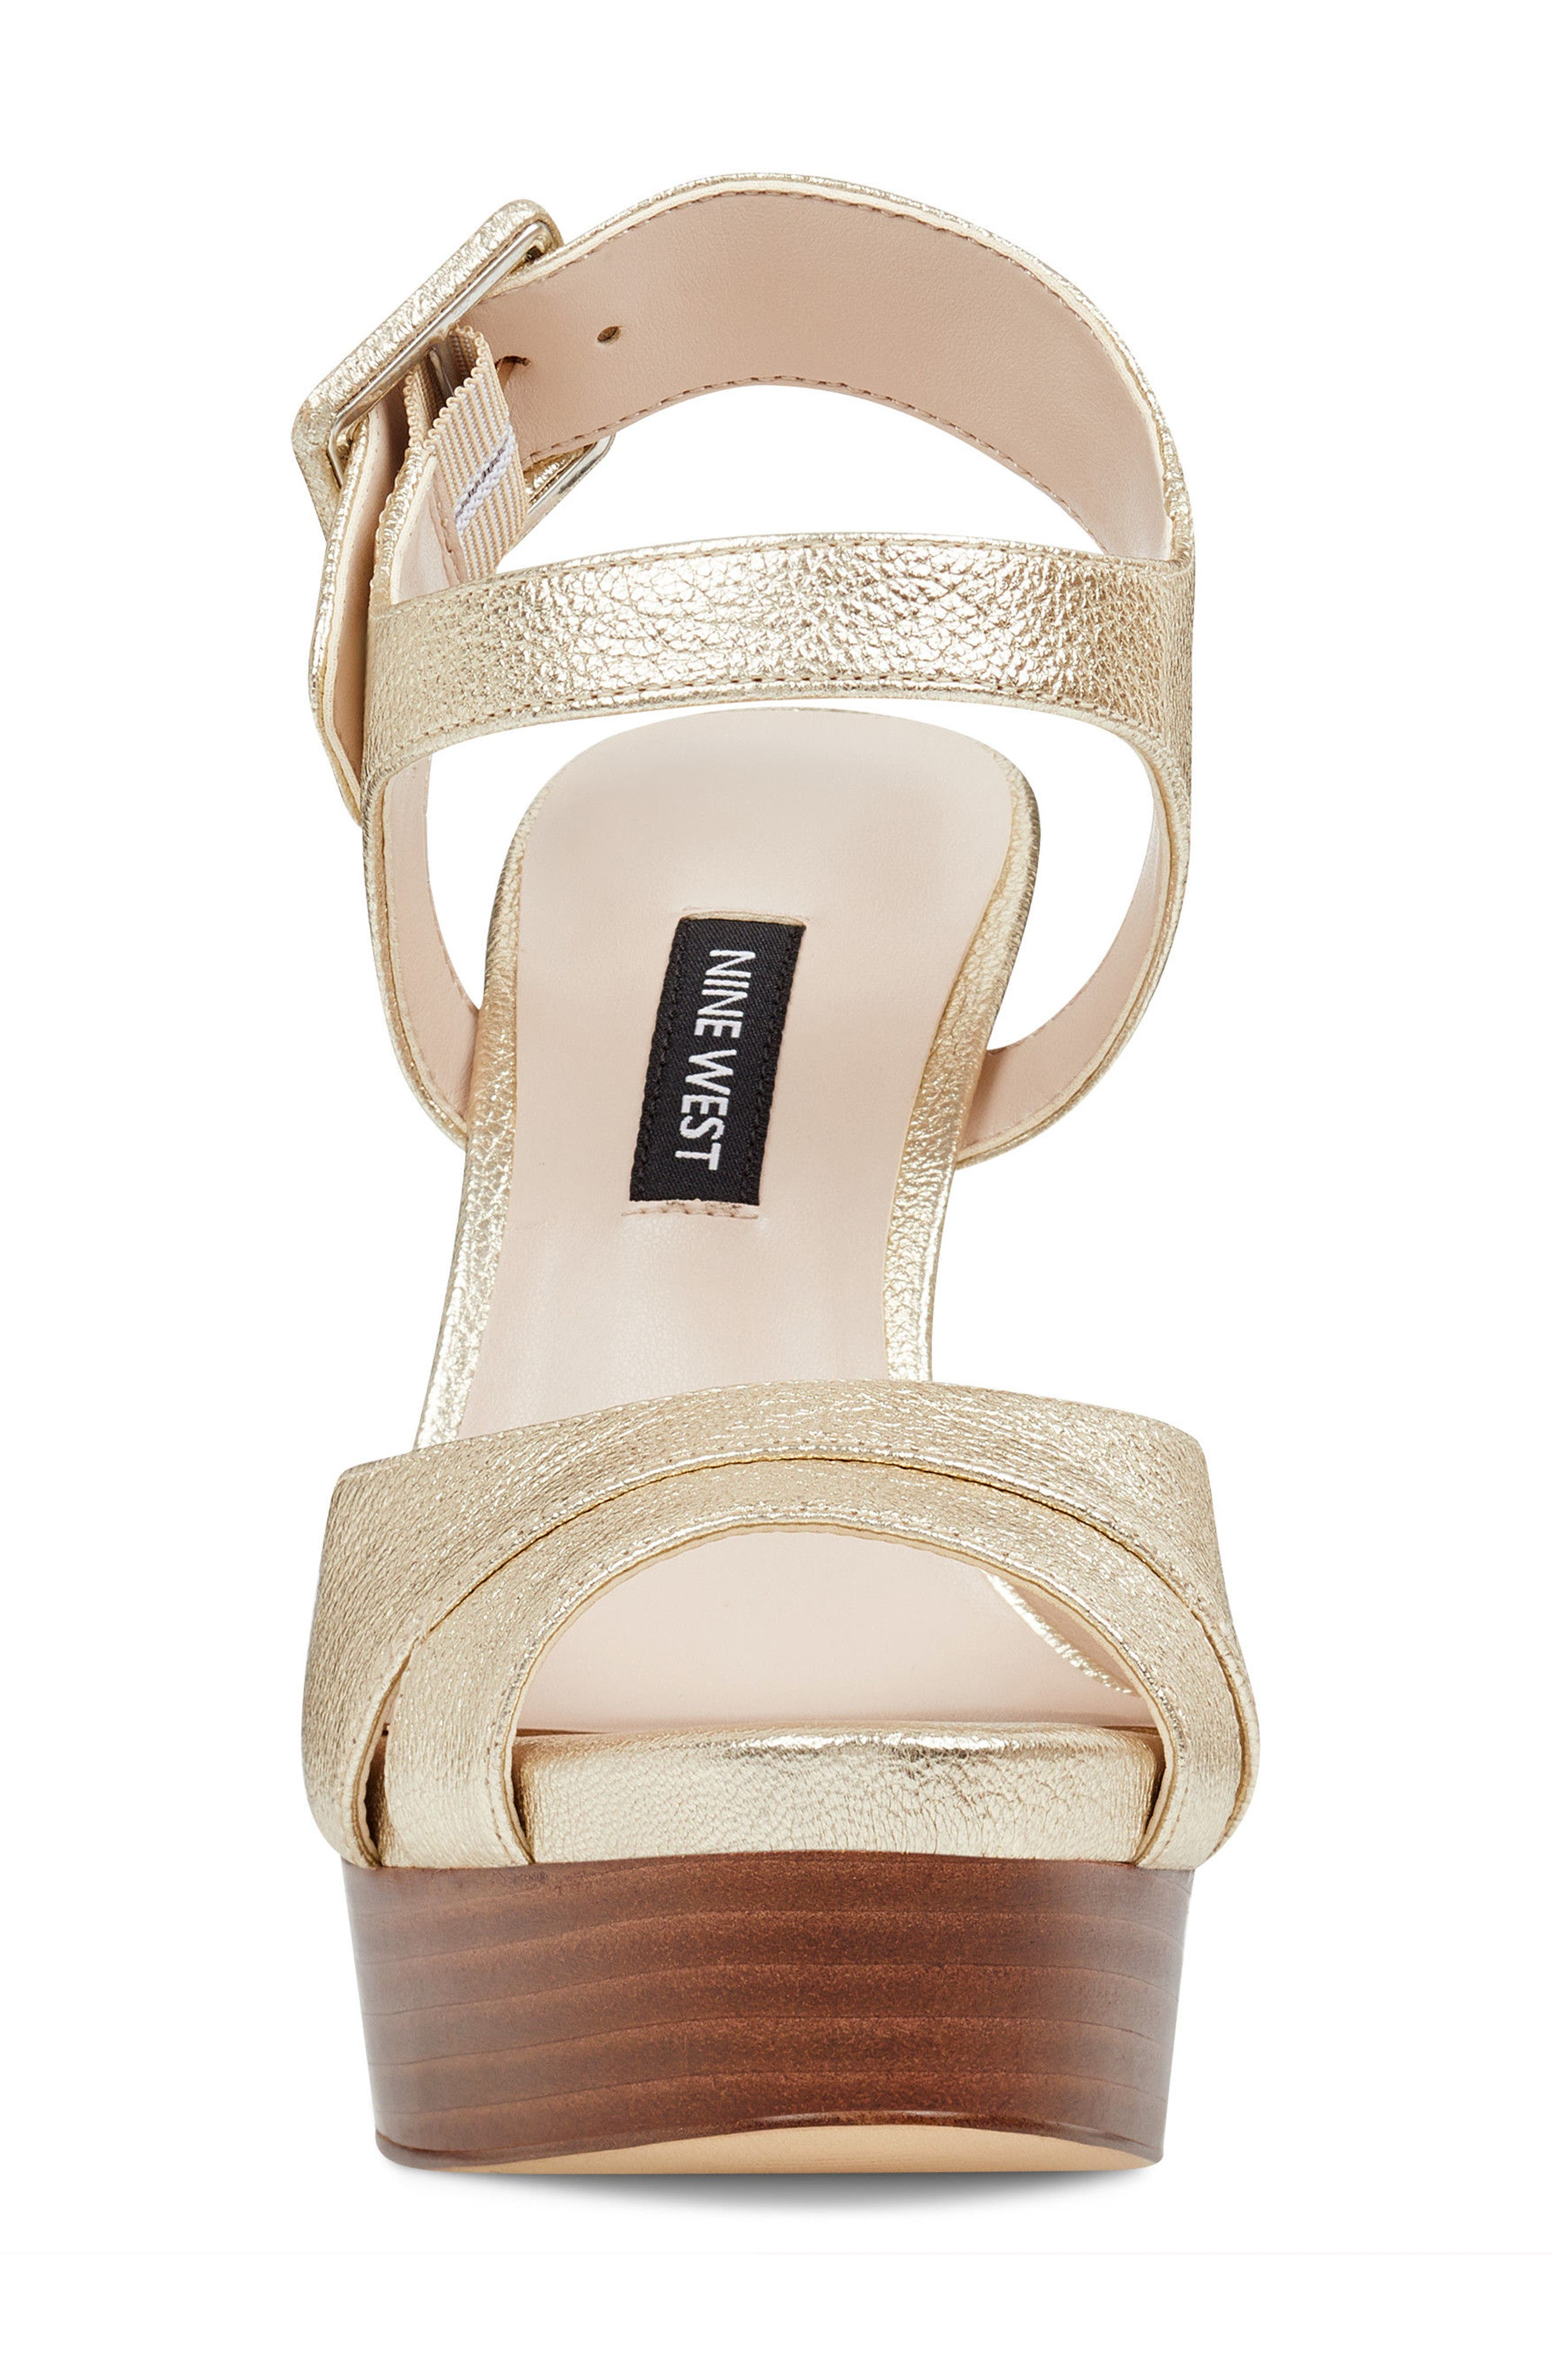 Ibyn Platform Sandal,                             Alternate thumbnail 4, color,                             Light Gold Leather